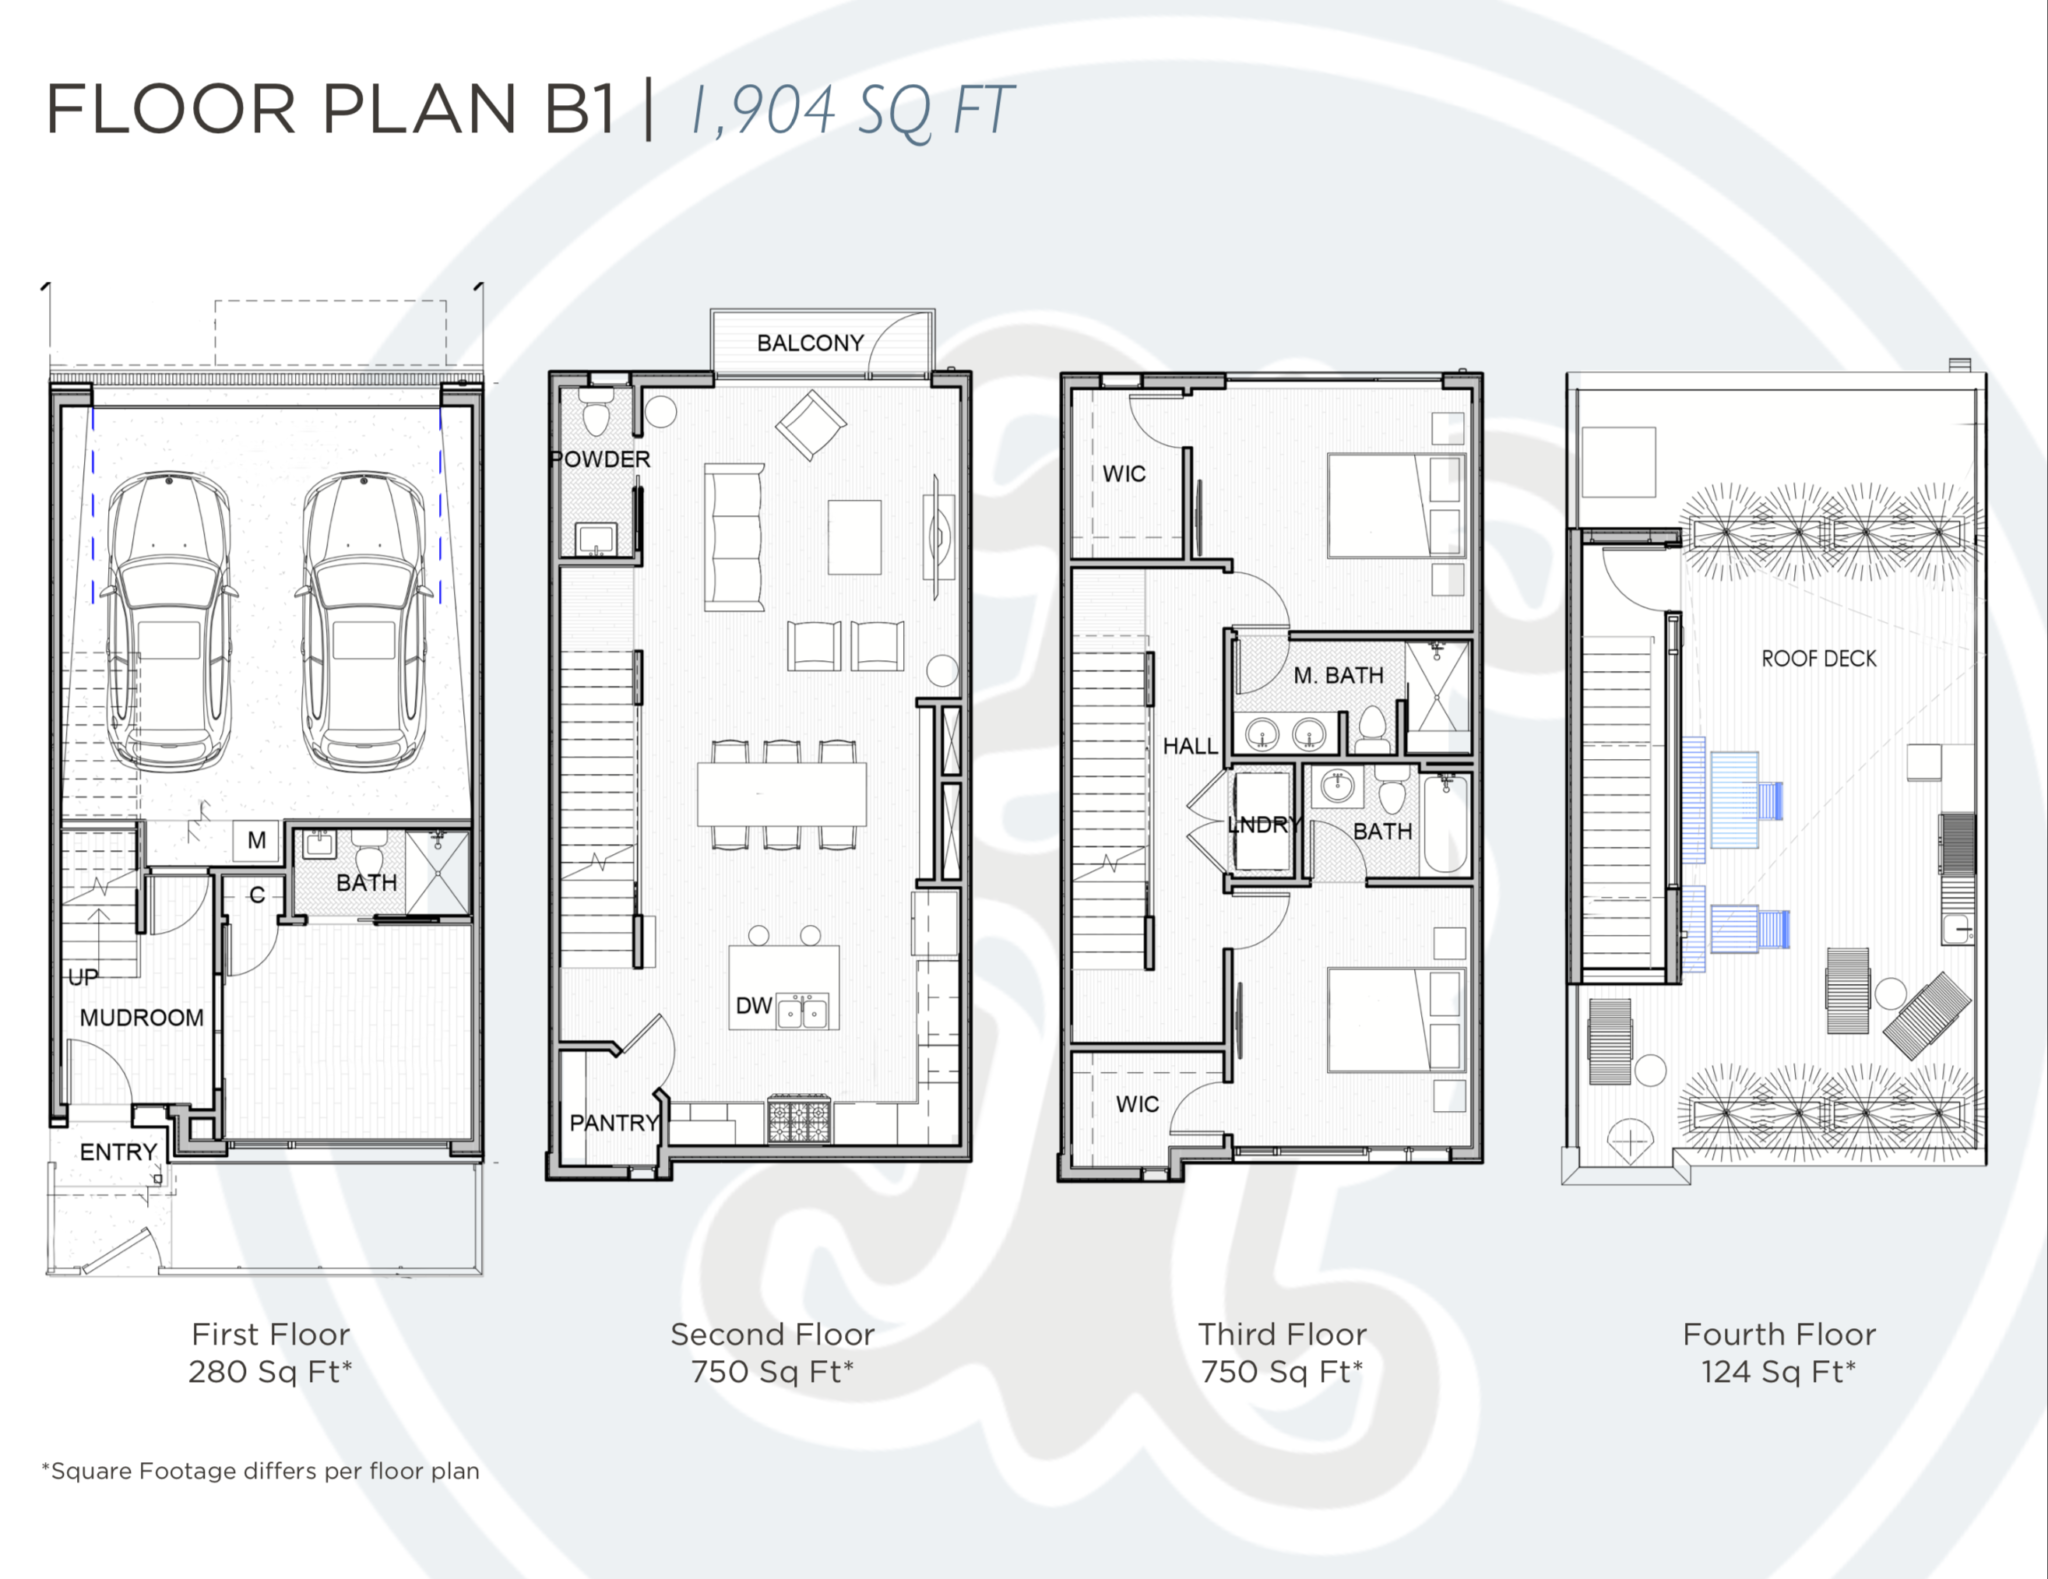 Ironside - Floor plan 1